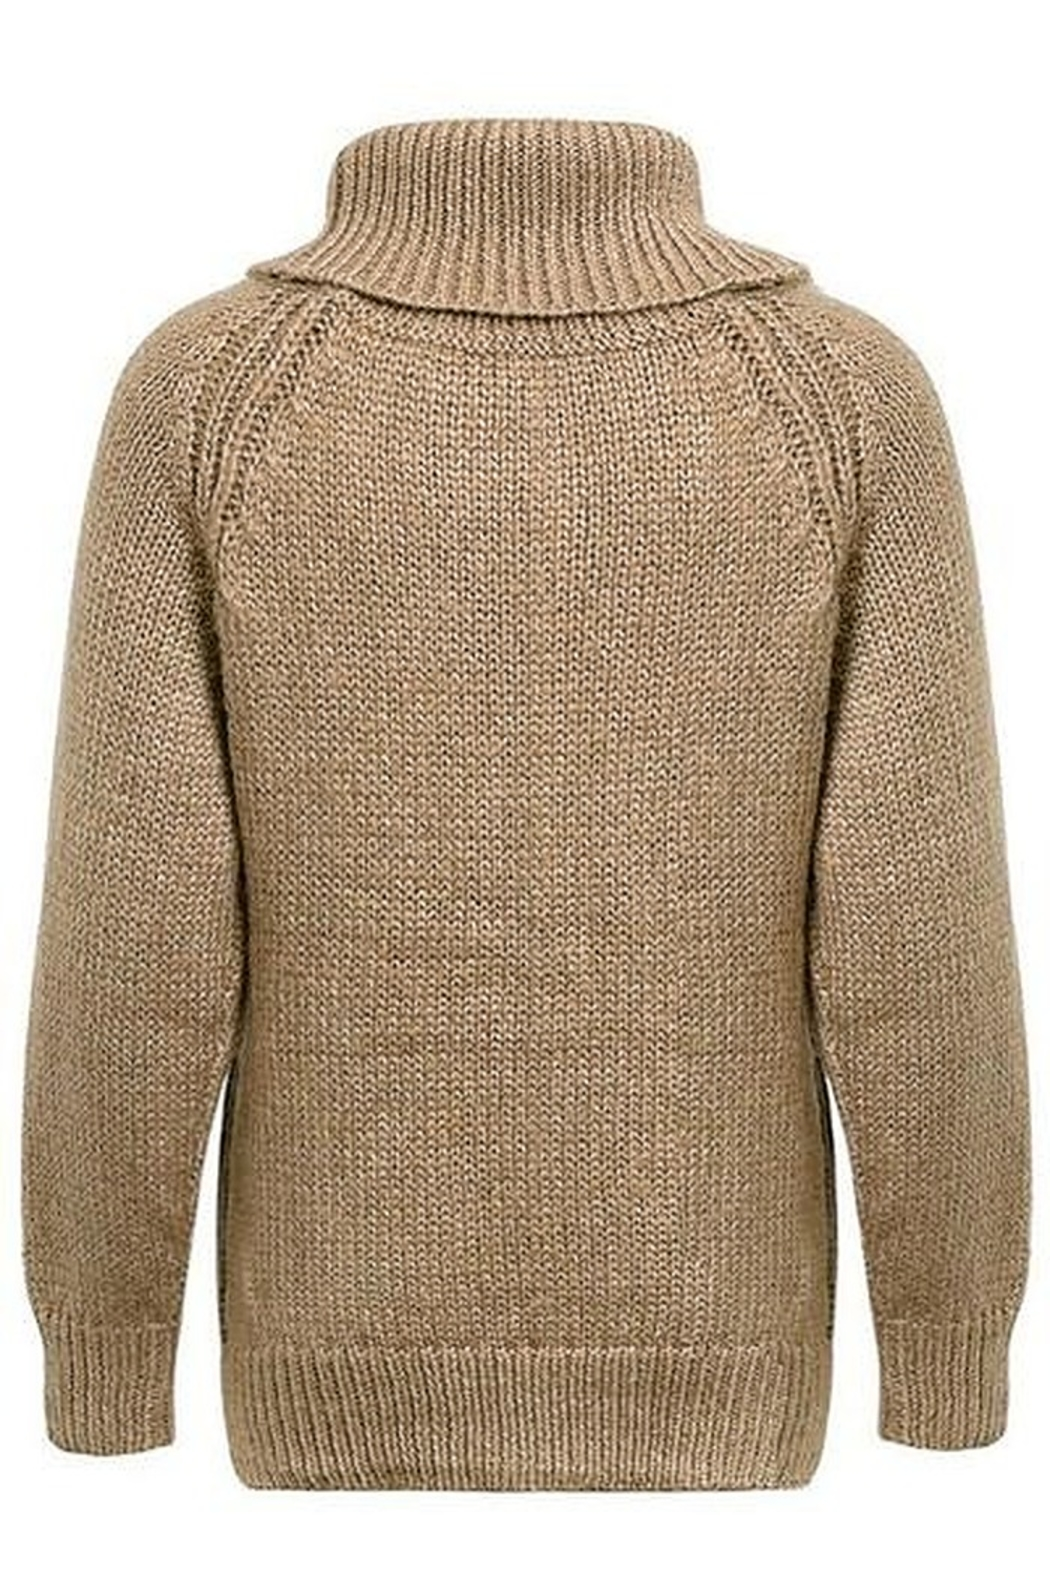 Hidden Valley Chunky Collar Knit Sweater - Front Full Image